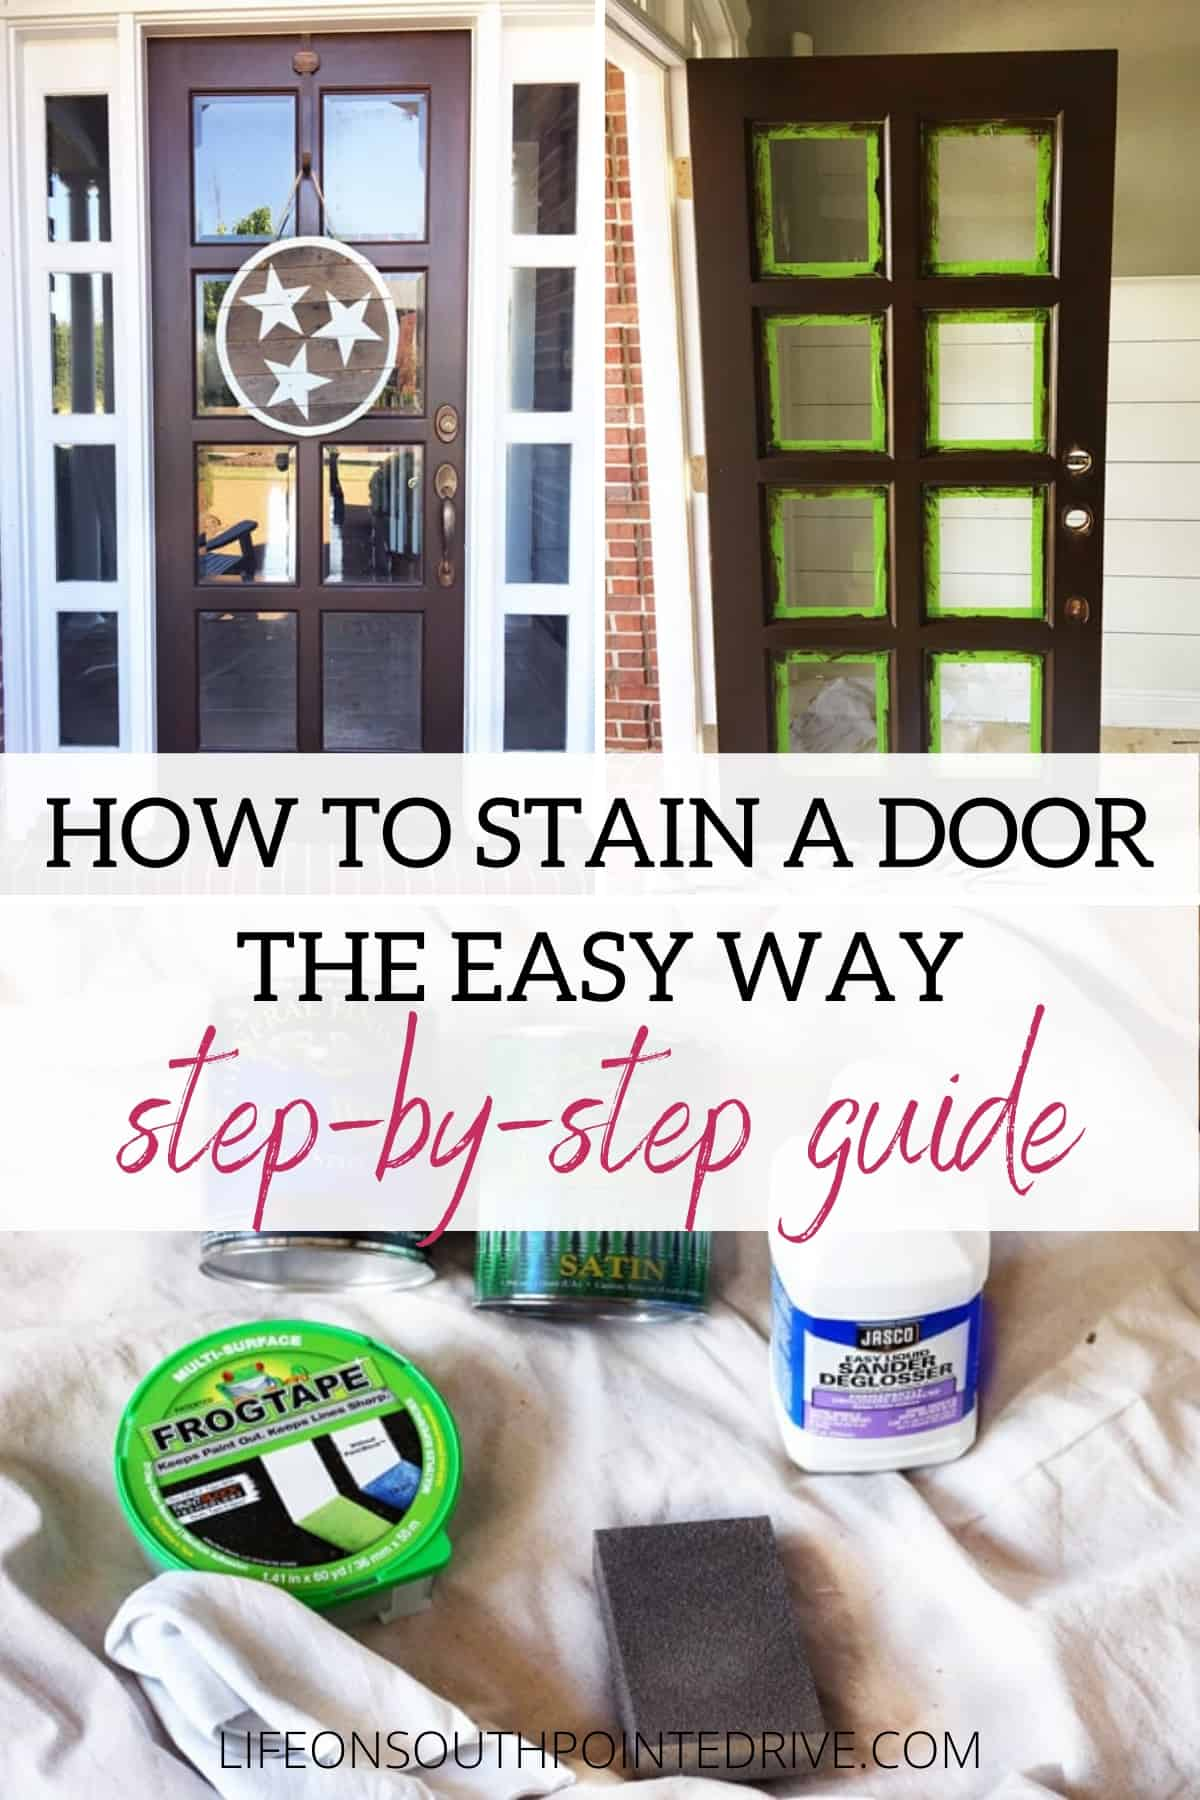 How to Stain a Door